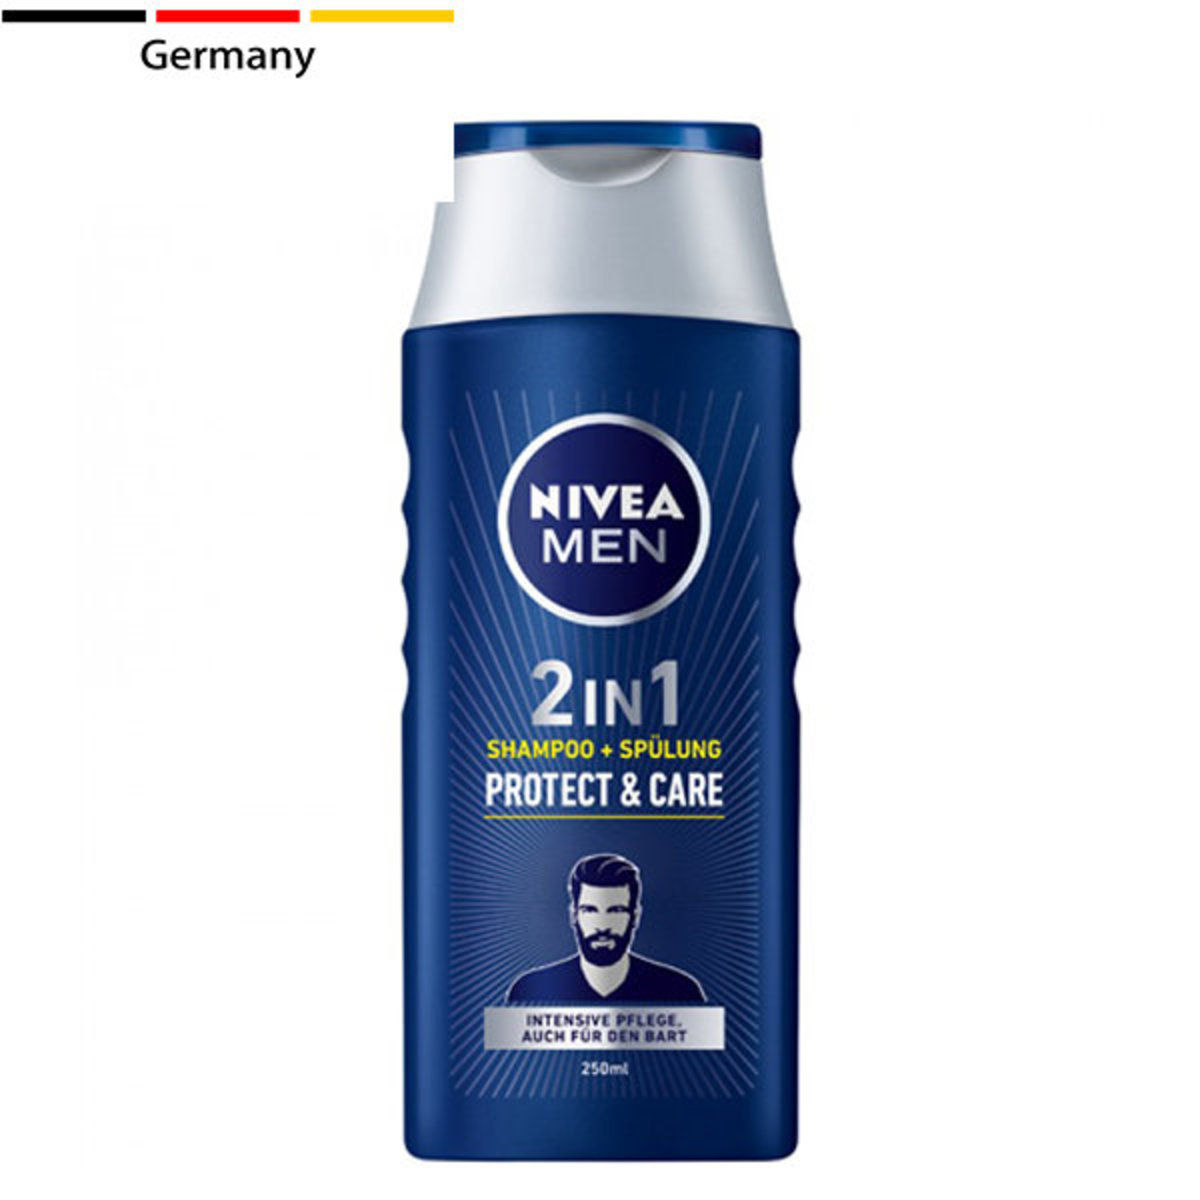 2in1 Shampoo and Conditioner - Protect and Care - 250ML (Parallel Import)